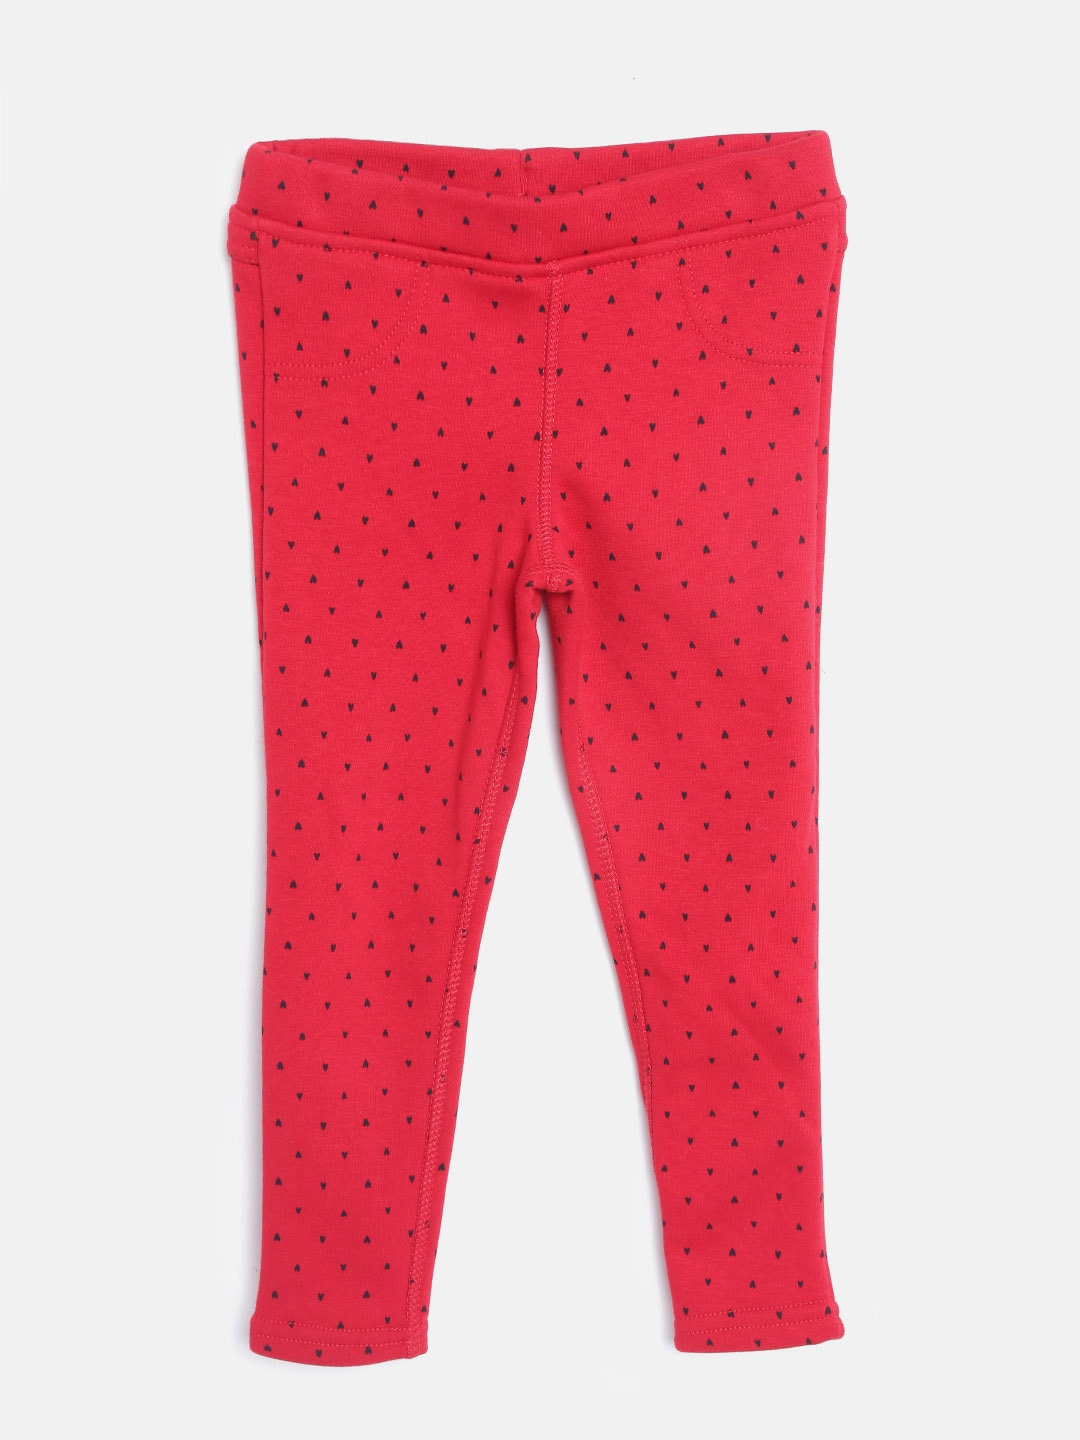 79cf66a2bbaa9 Mothercare - Buy Kids Clothing Online in India from Mothercare